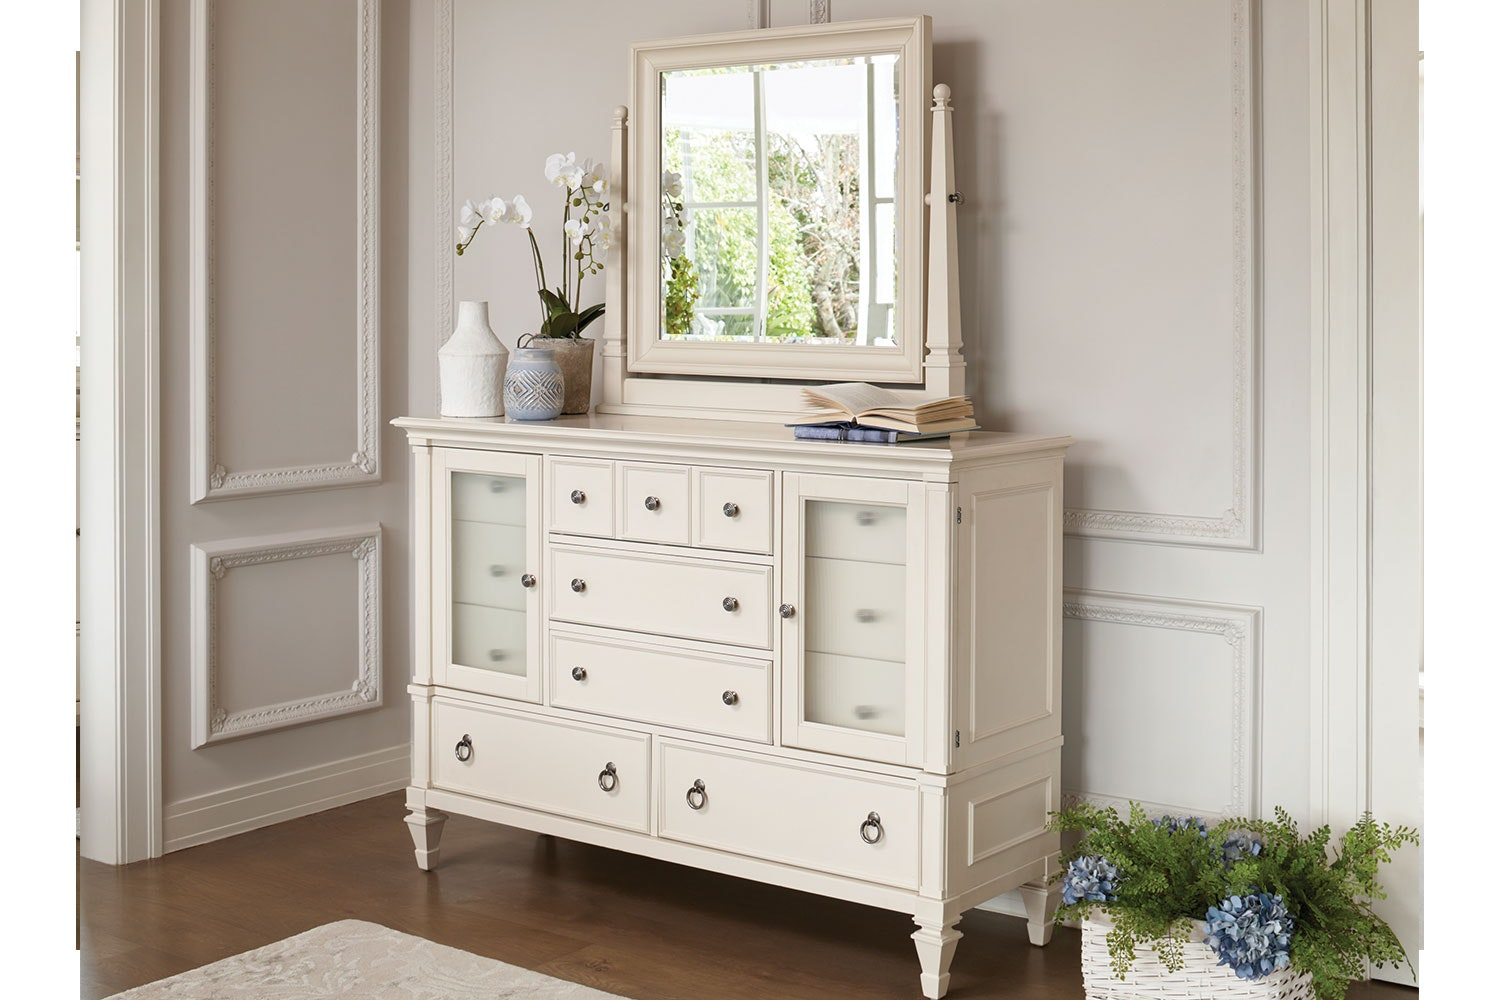 Ashby Dresser and Mirror by Garry Masters